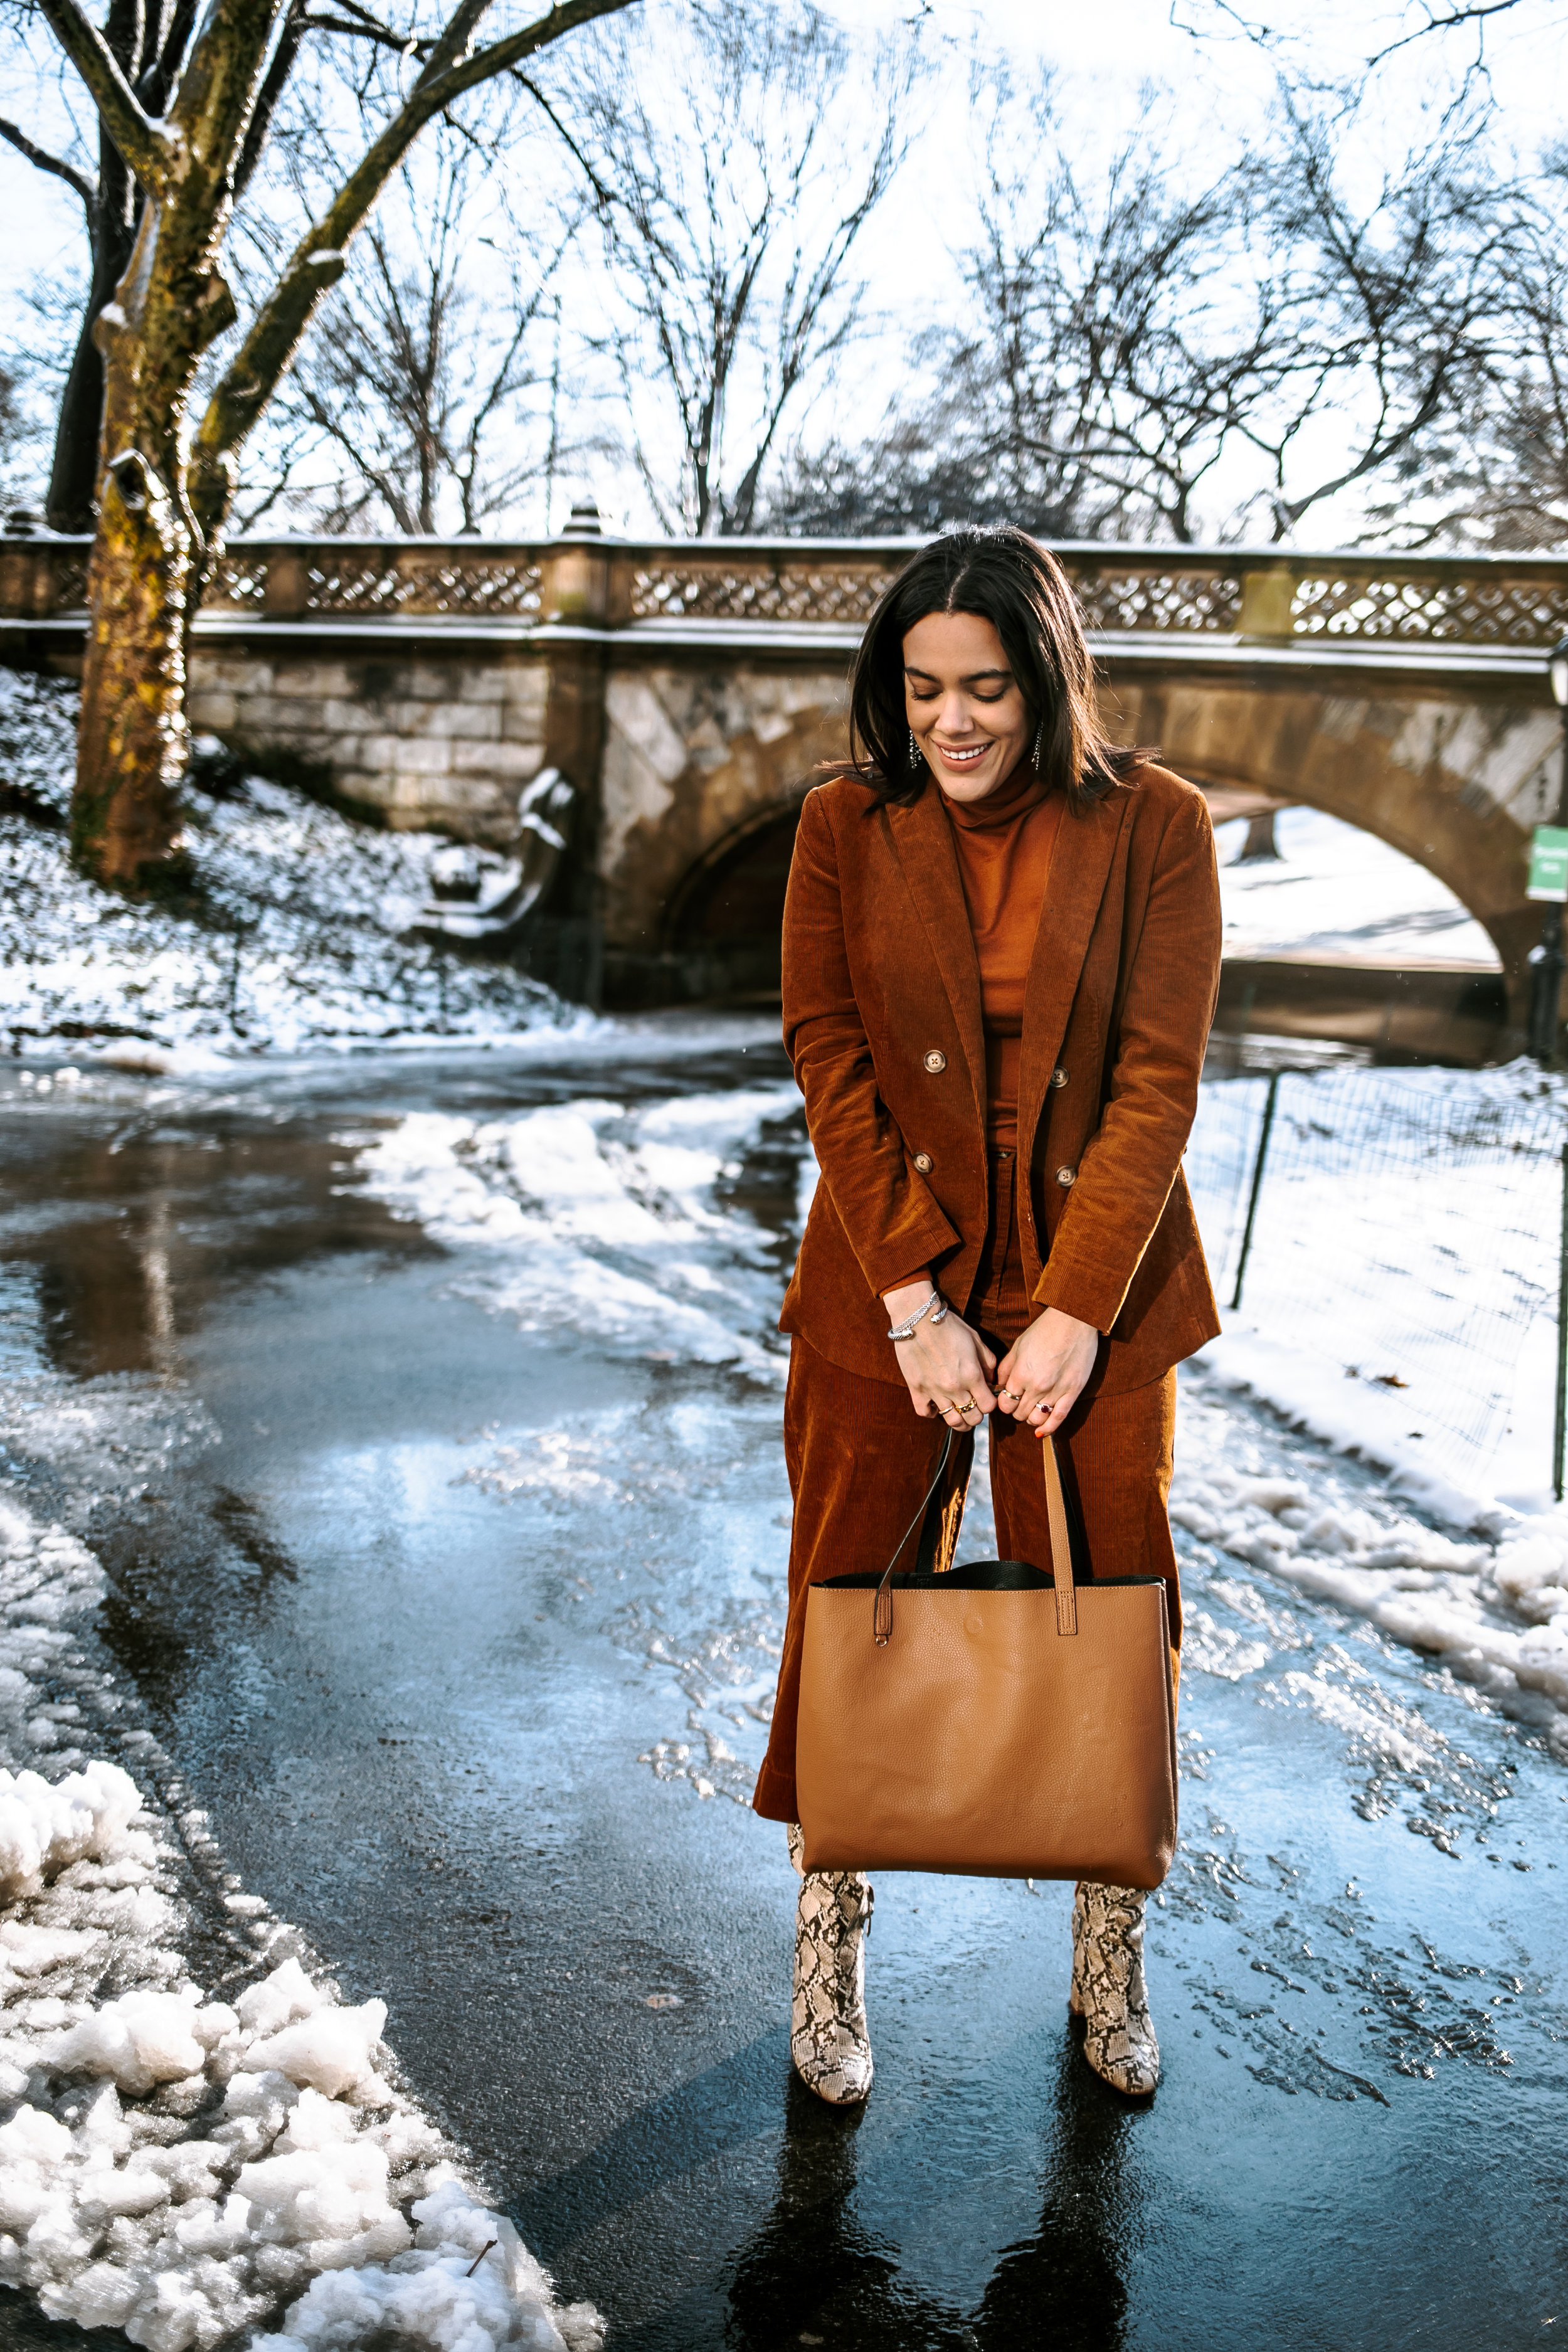 How-to-style-corduroy-suit-and-snakeskin-zara-boots-latina-new-york-city-fashion-blogger-style-operator-winter-fashion.jpg